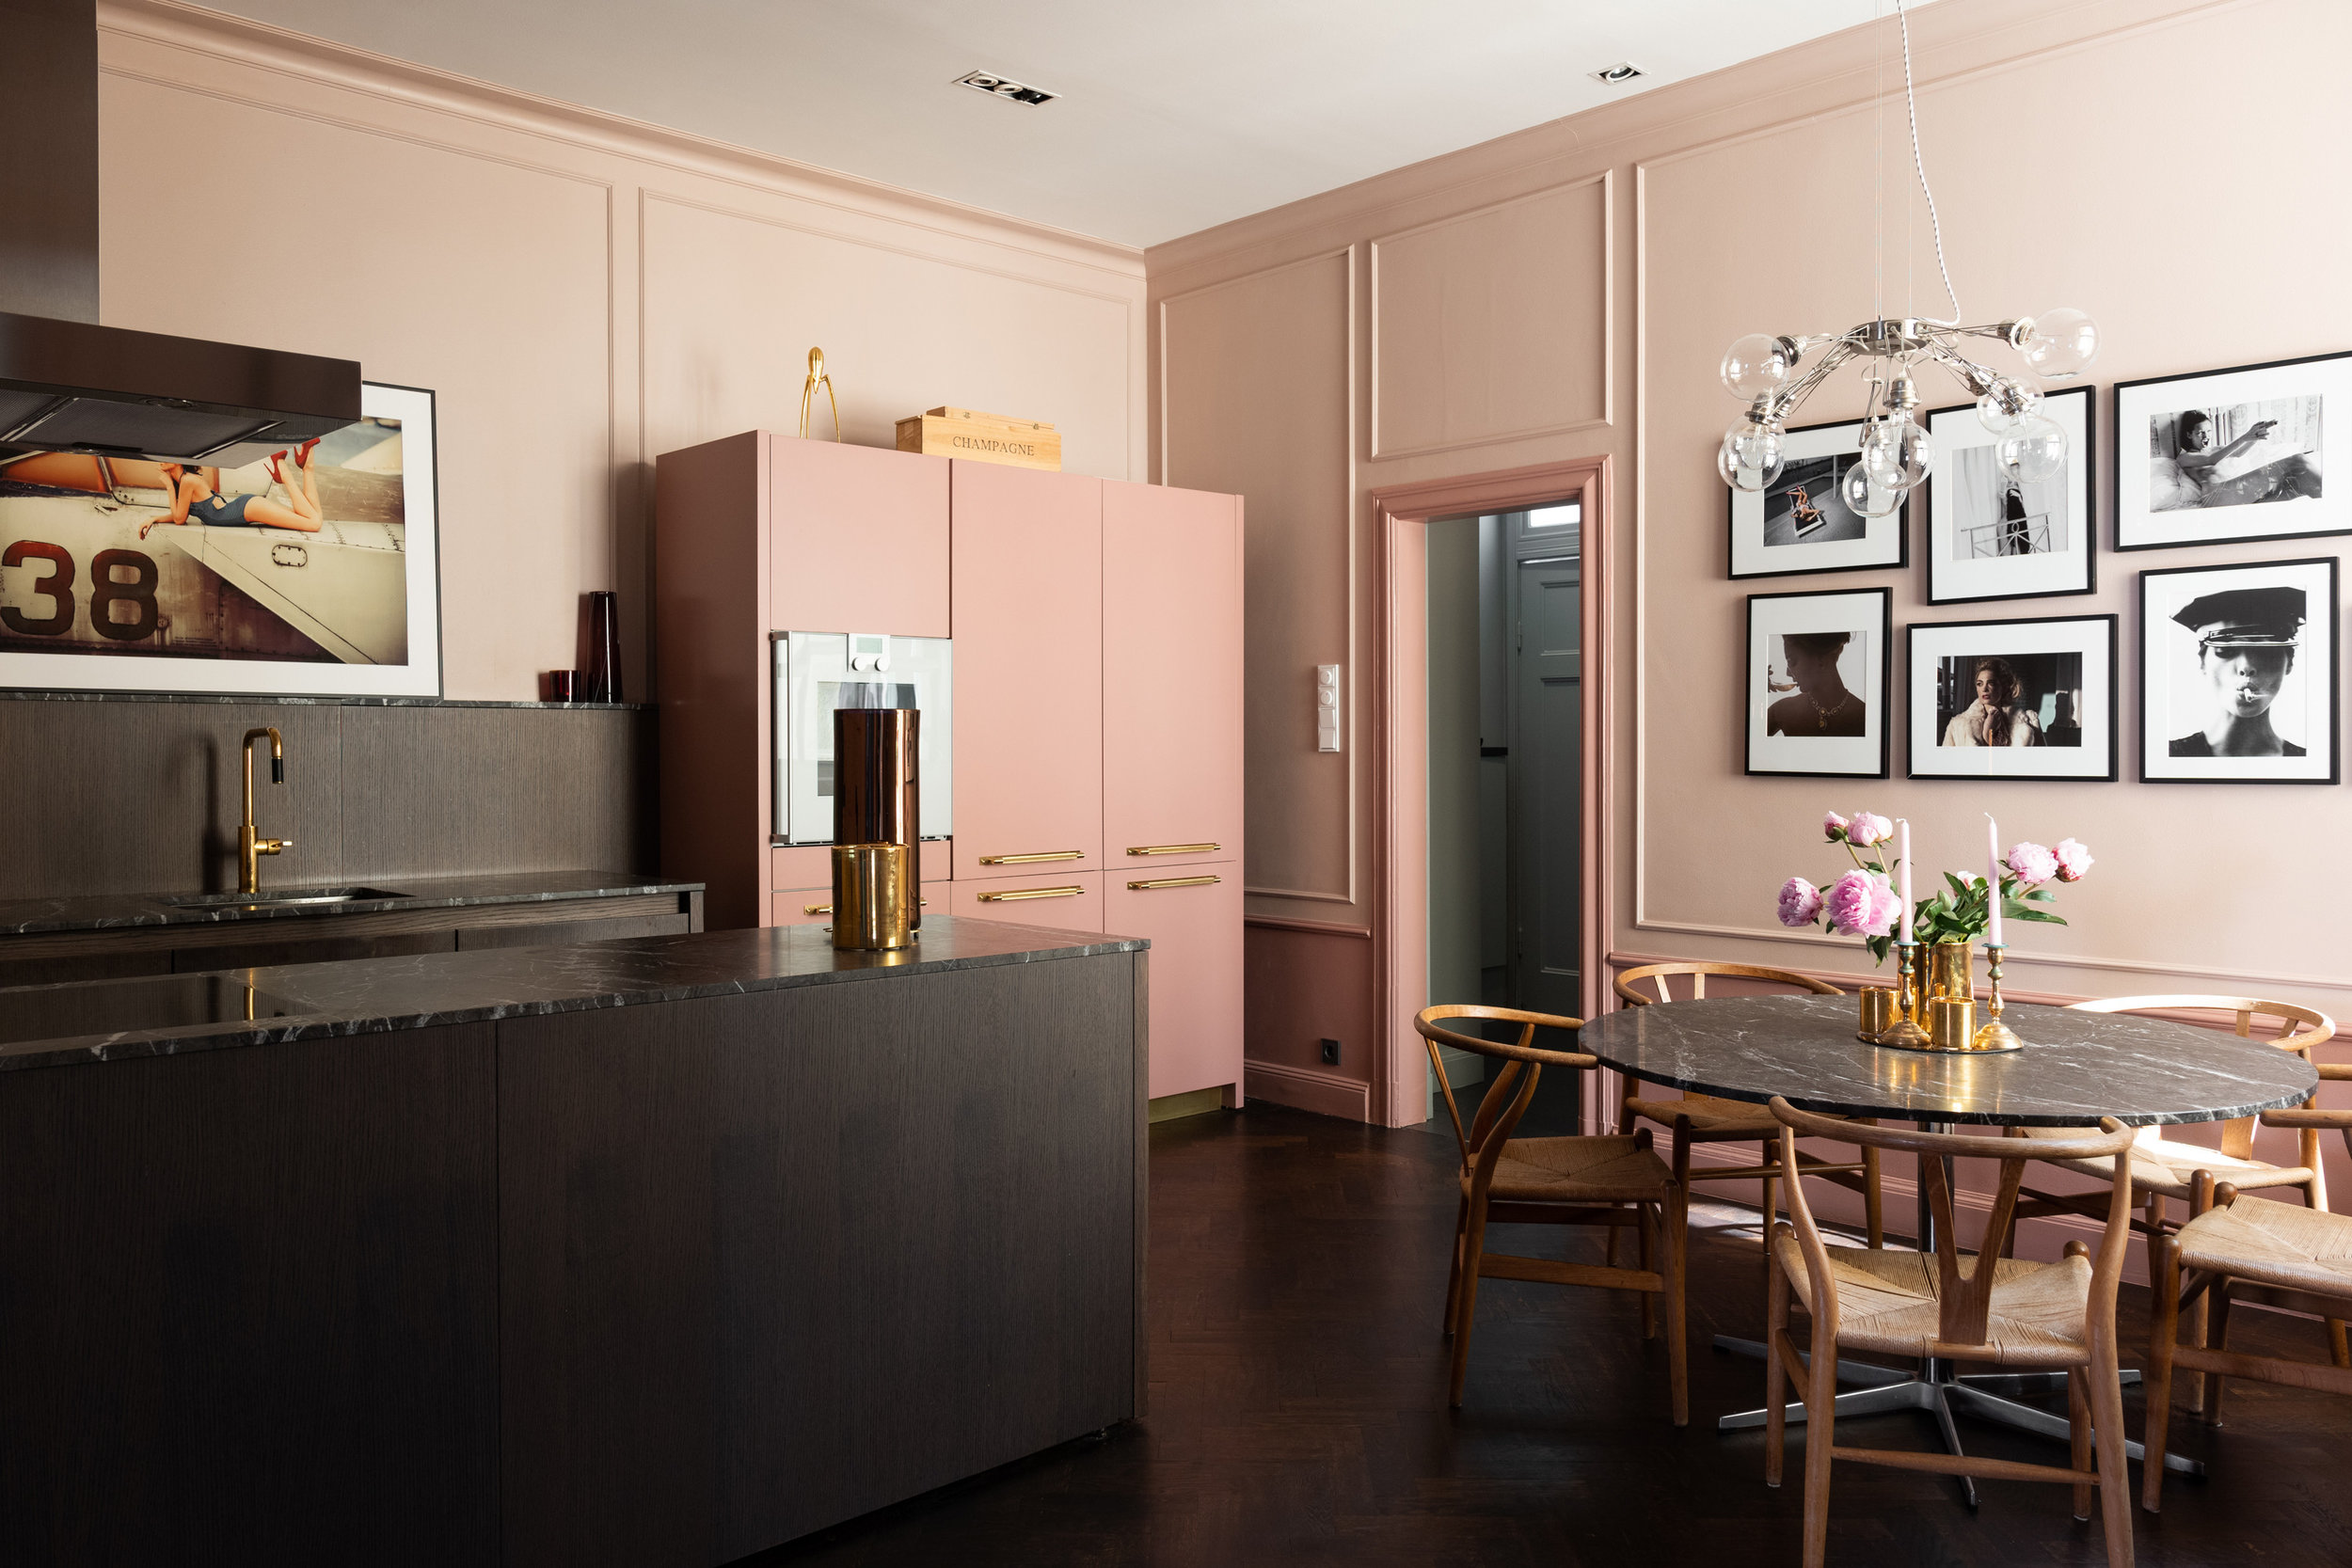 The Nordroom - An Art-Filled Blue And Pink Apartment